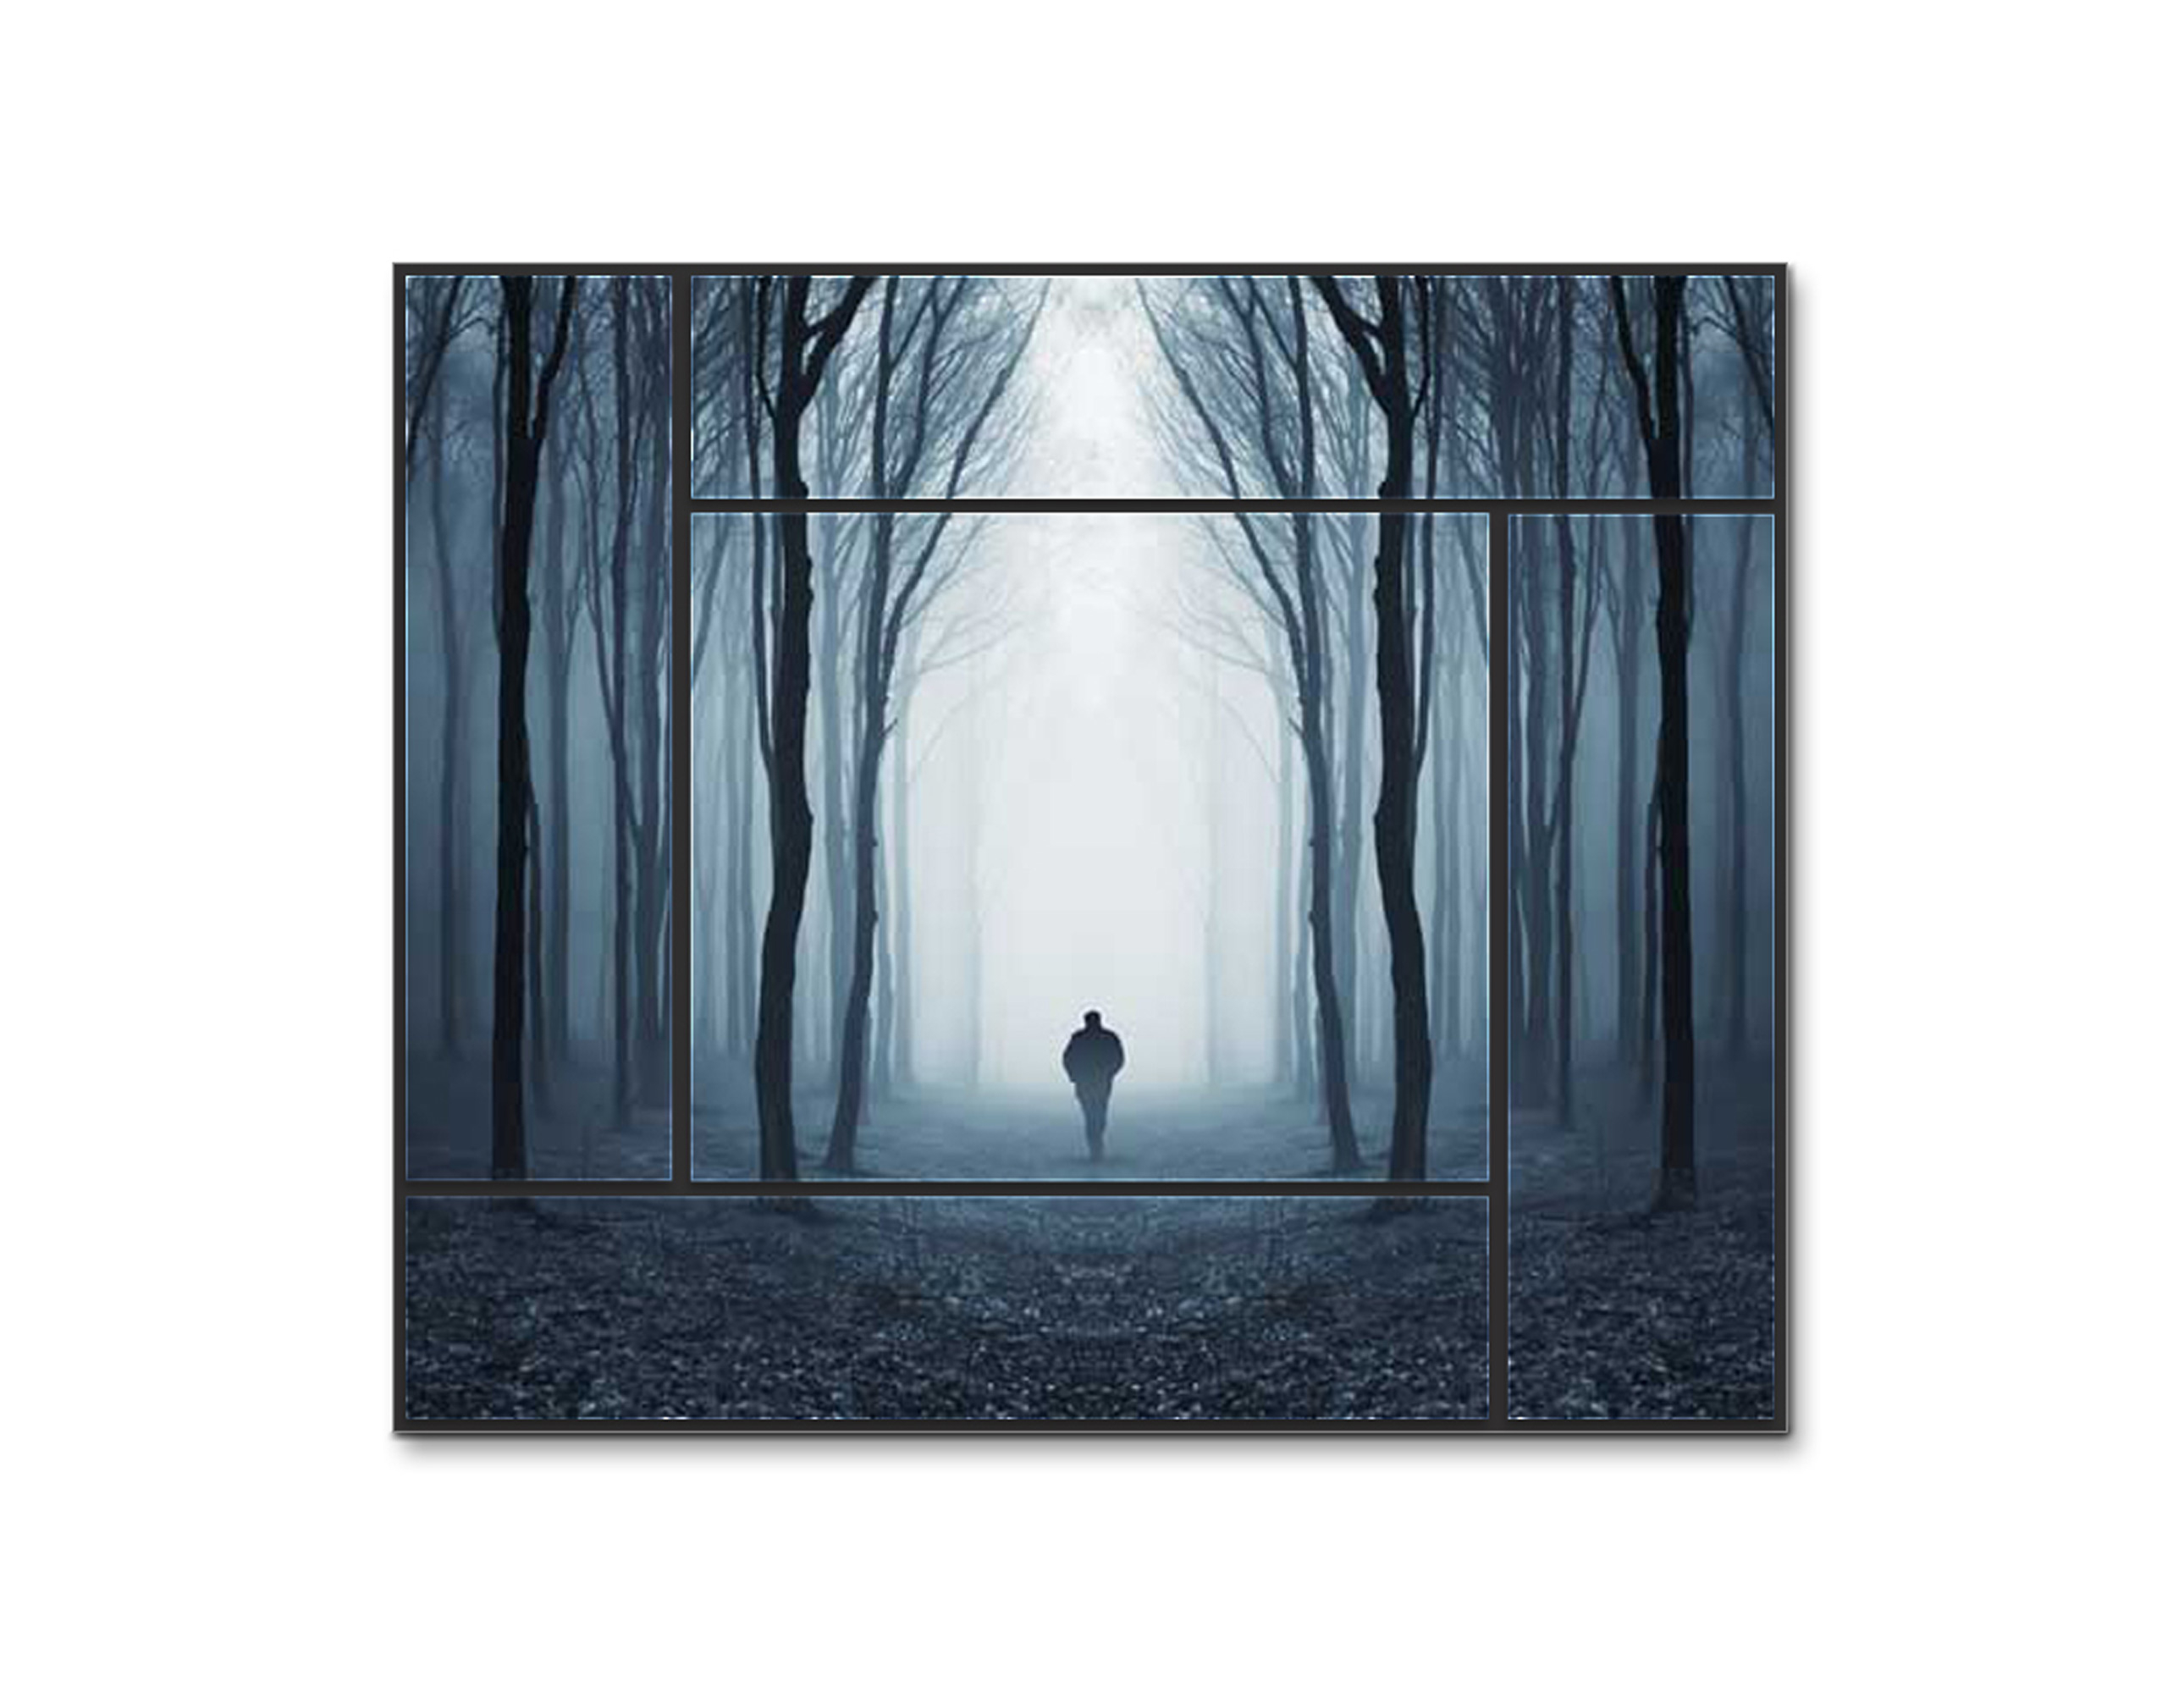 "The Woods - Forest Walk, Wanderer, Black and White 36"" x 30.4\"" Print on Wood"